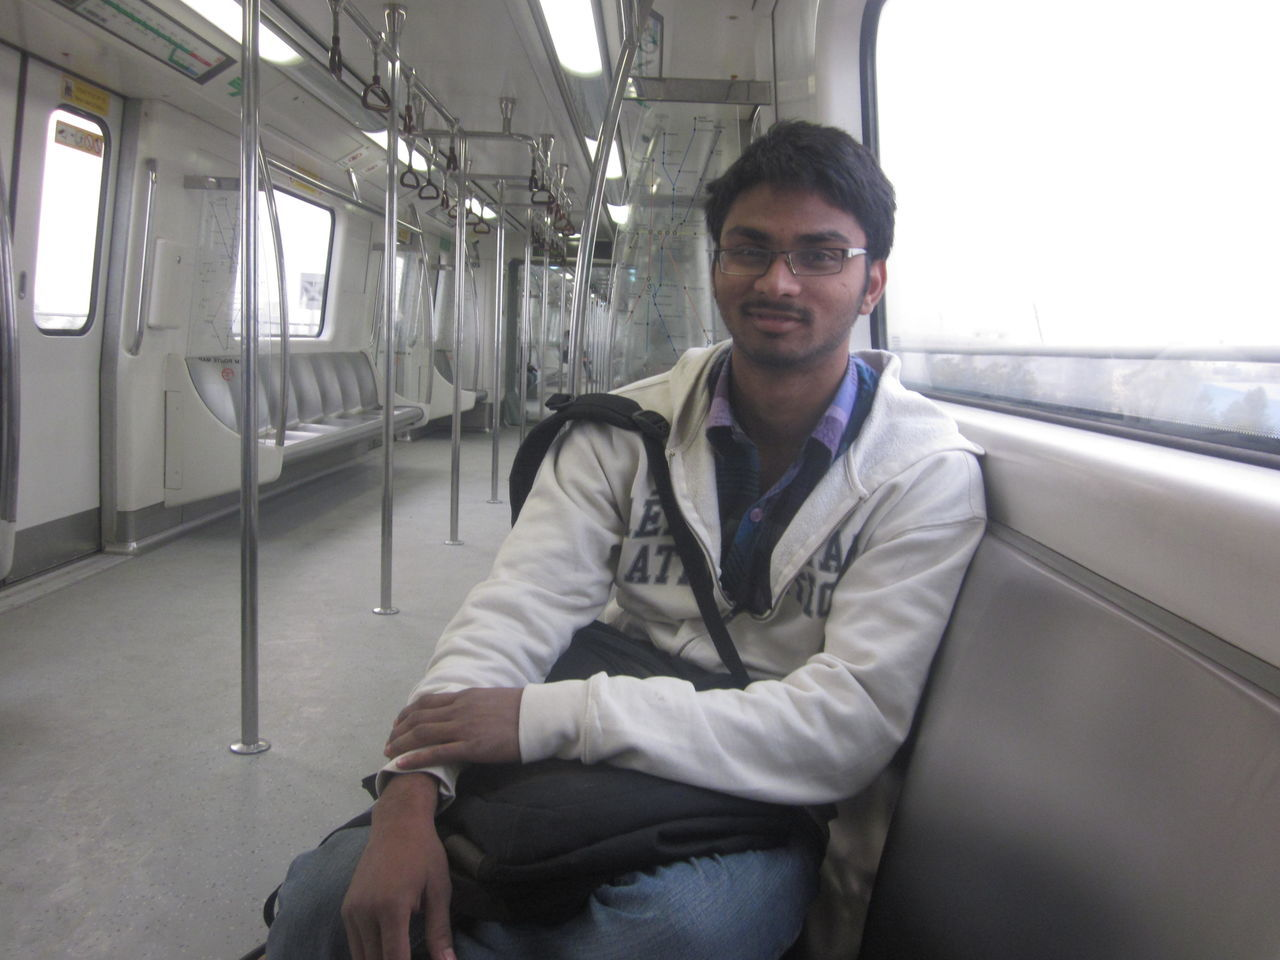 looking at camera, transportation, one person, portrait, public transportation, real people, front view, young adult, young men, sitting, mode of transport, smiling, indoors, vehicle seat, day, people